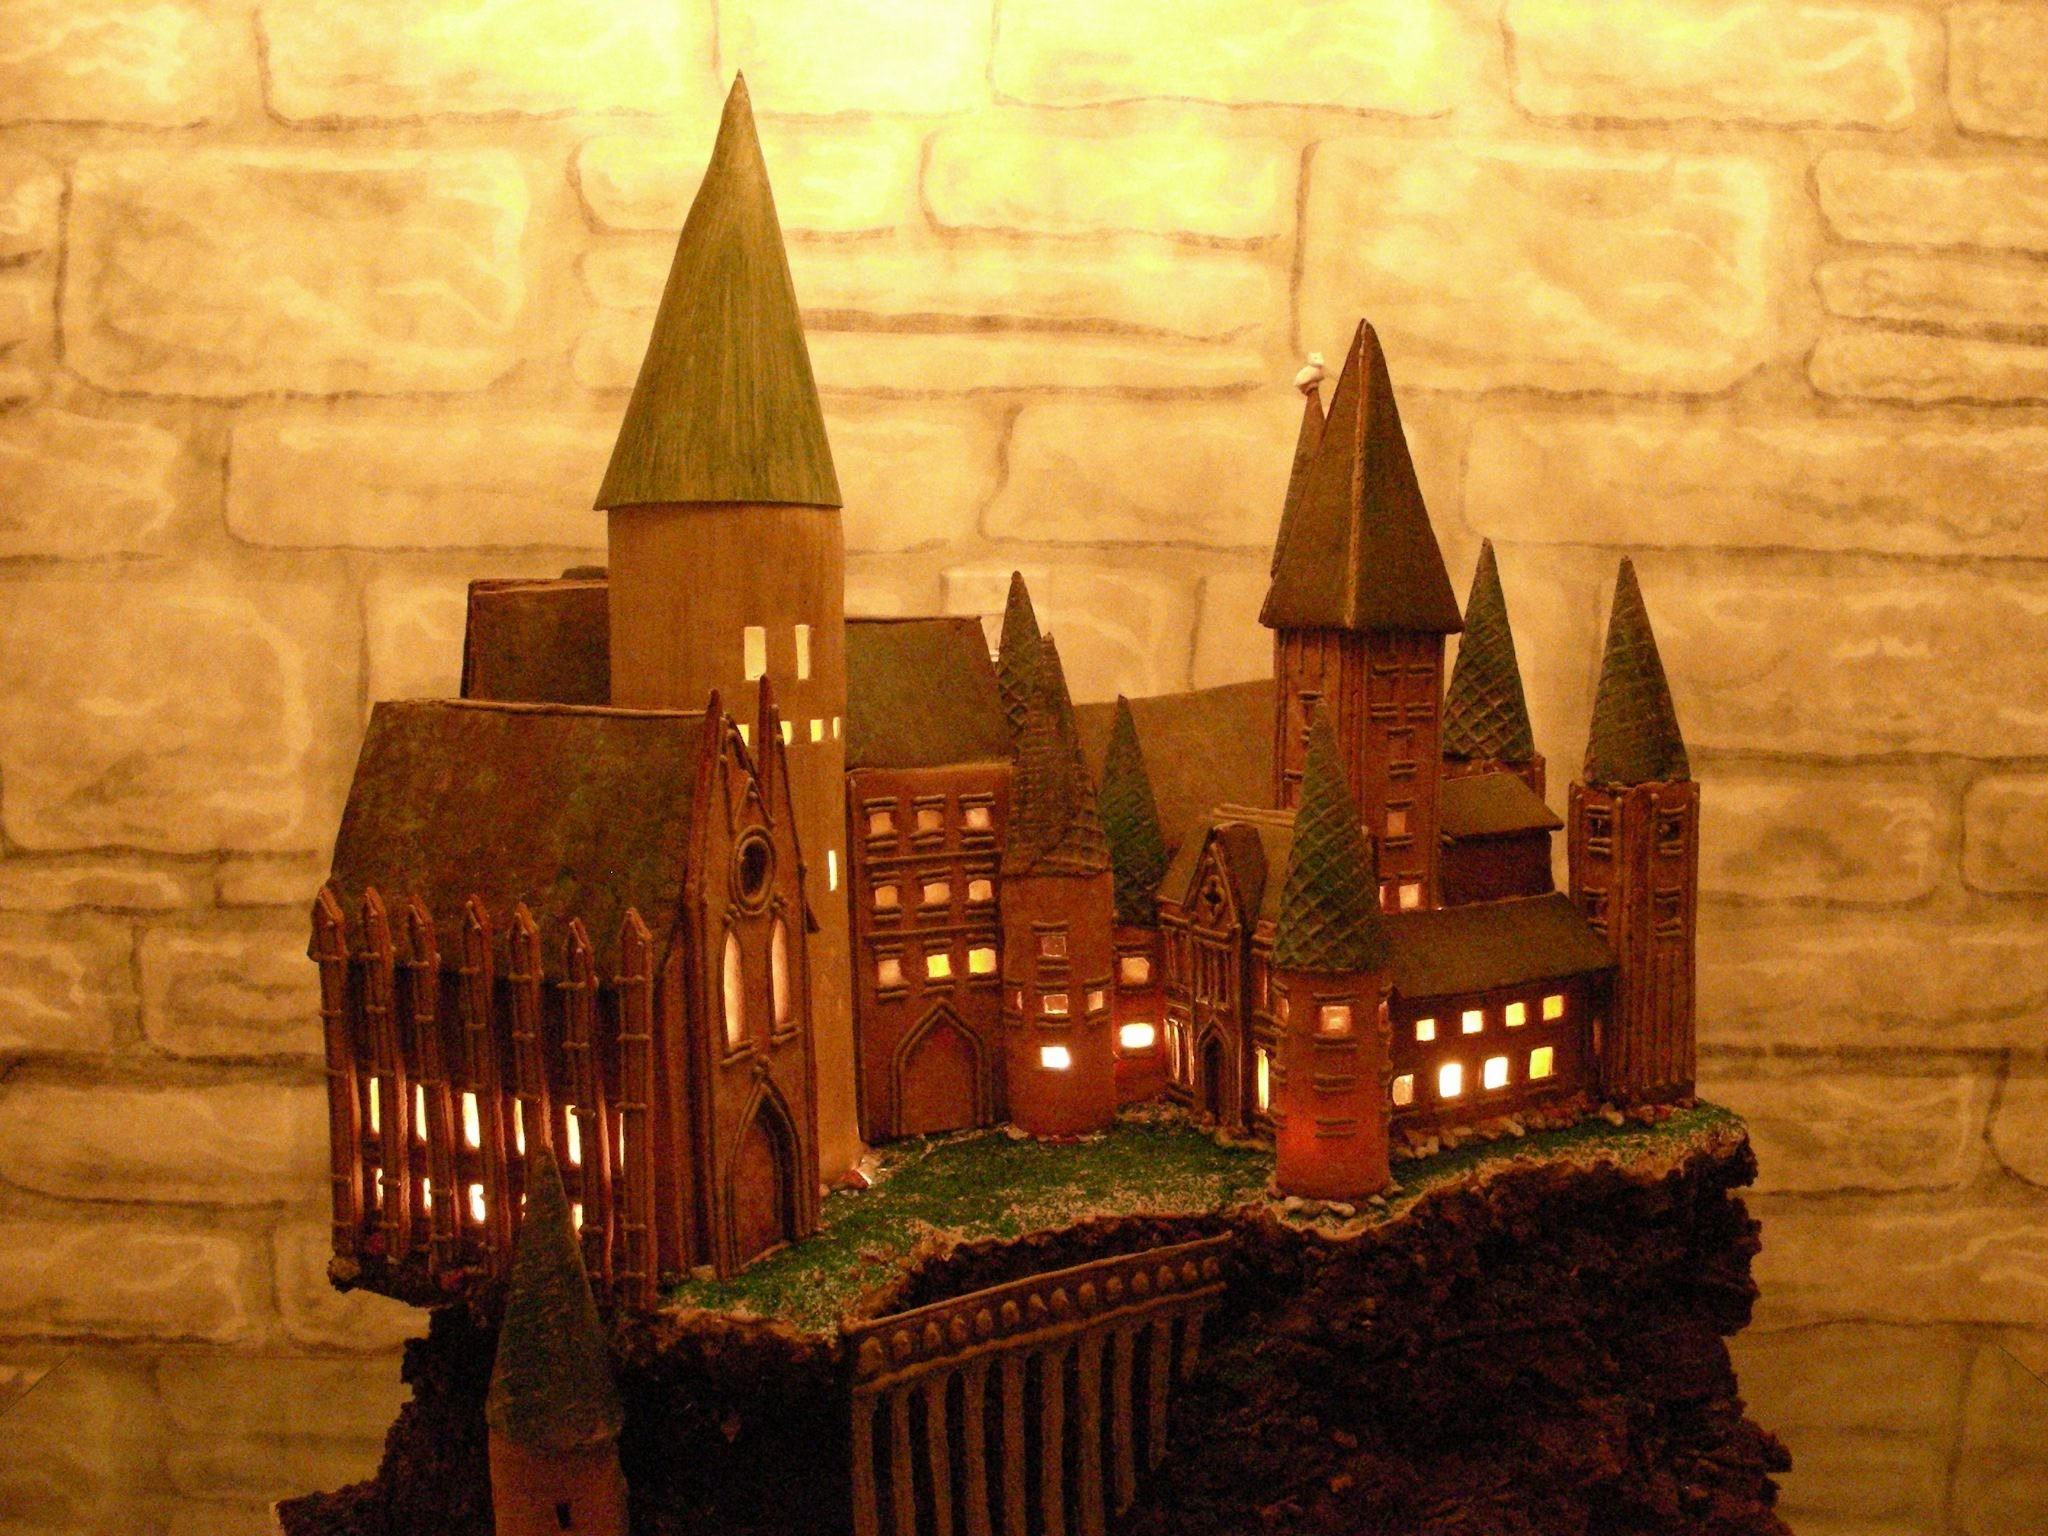 Gingerbread Castle Template Awesome Hogwarts Gingerbread Castle Plete with Internal